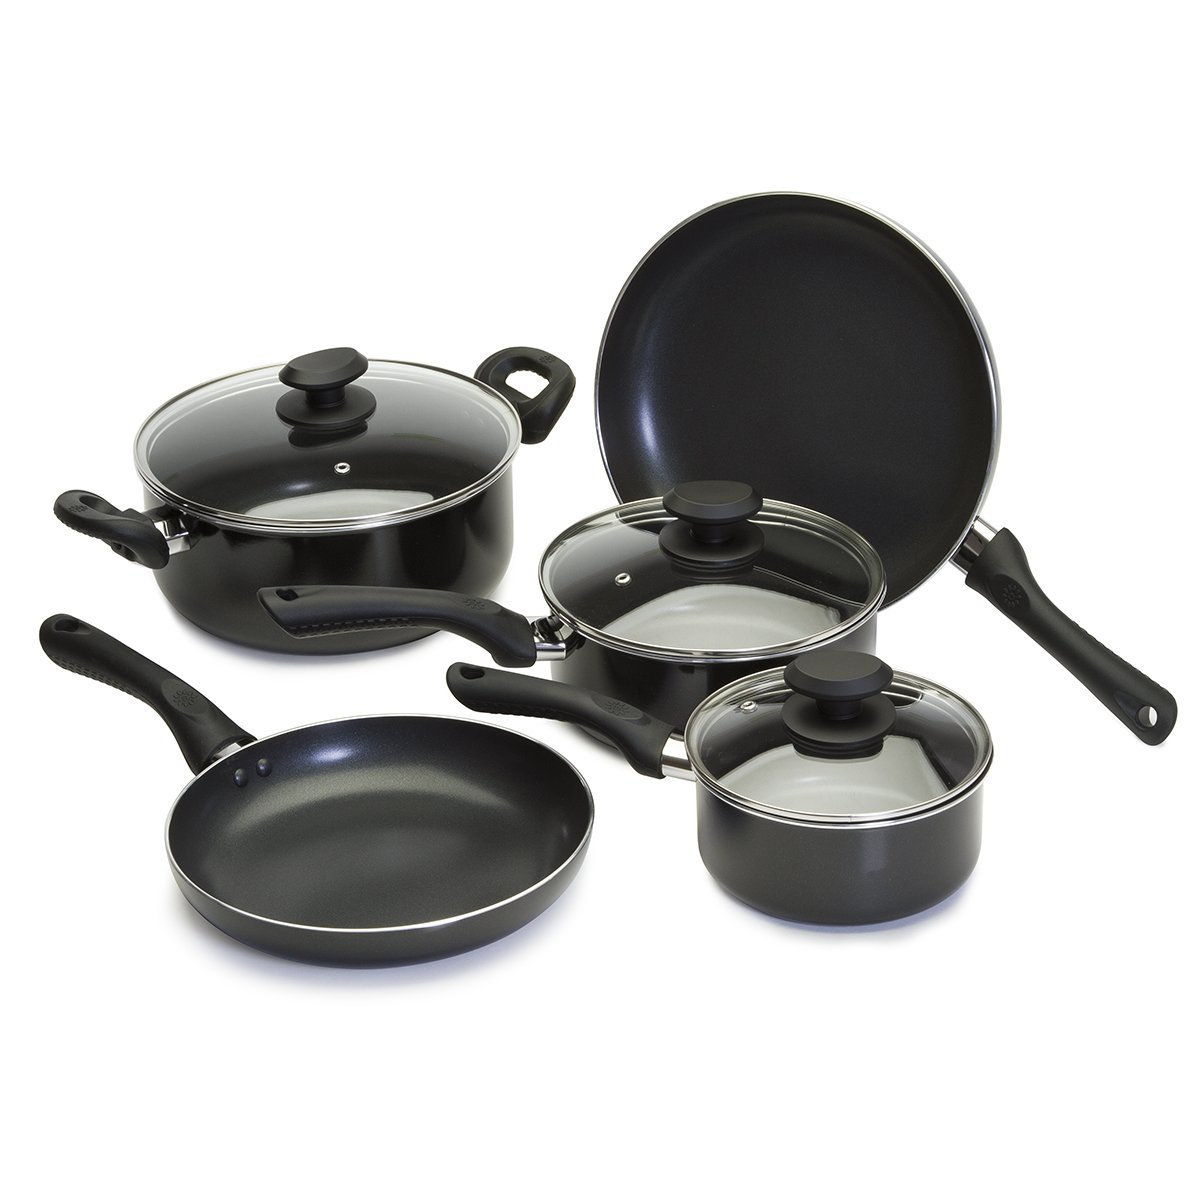 Ecolution EABK-1208 Artistry Cookware Set Nonstick, 8 Piece, Black